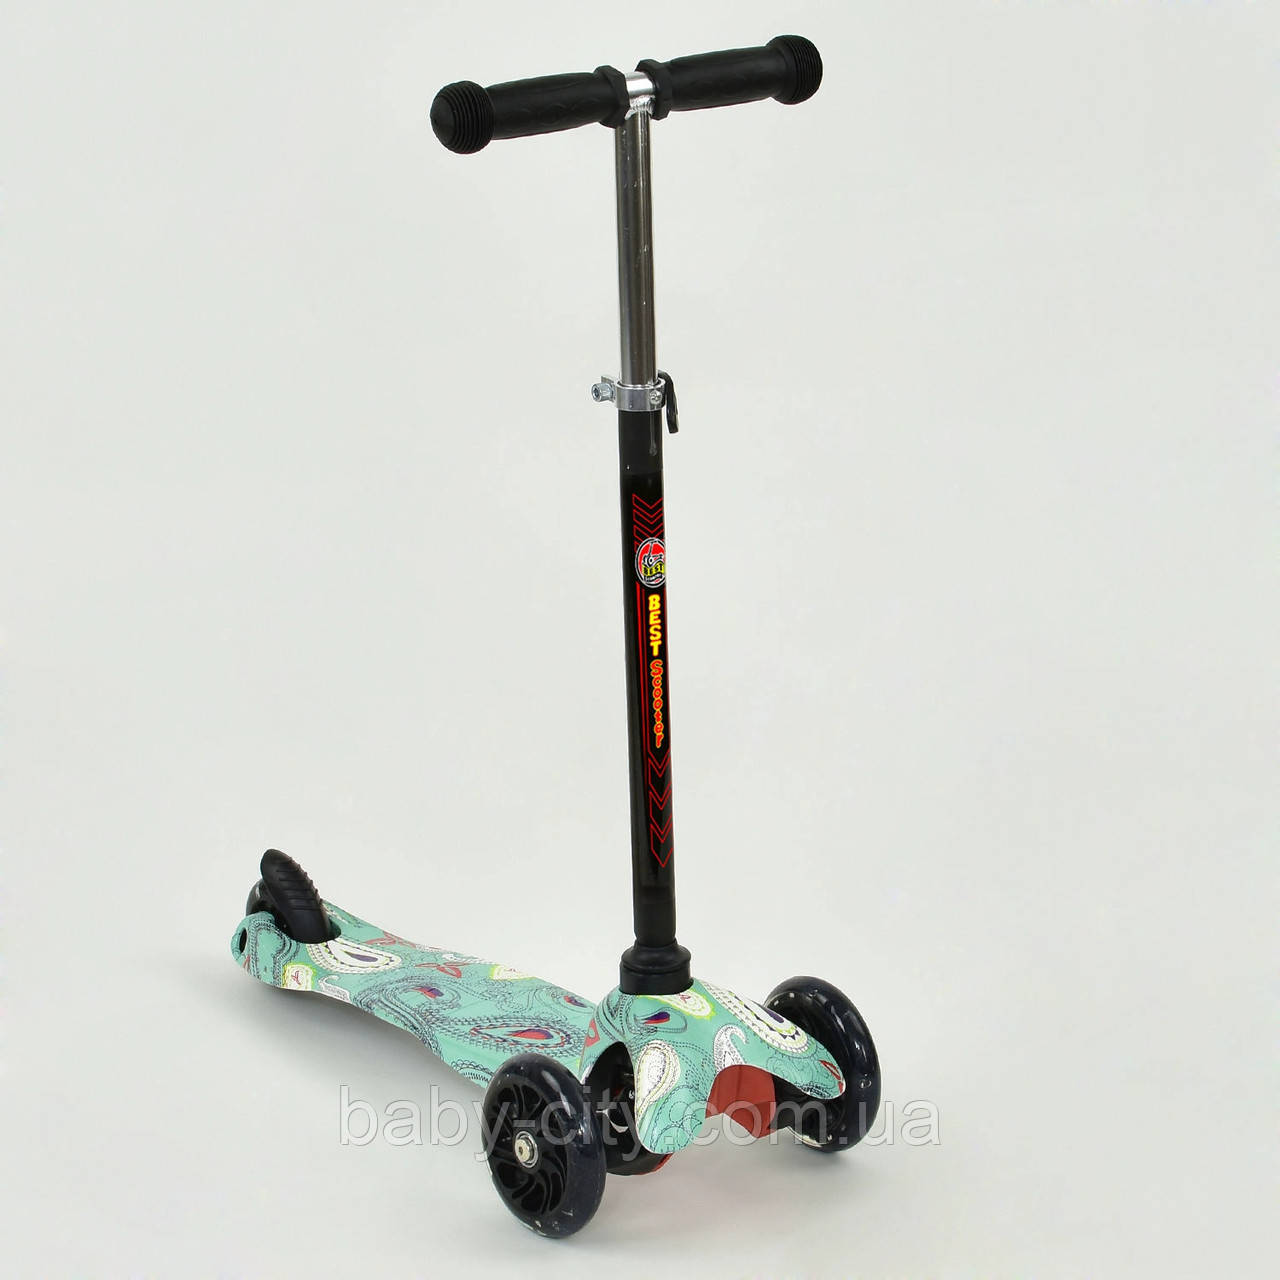 Самокат MINI Best Scooter А 24695 /779-1206